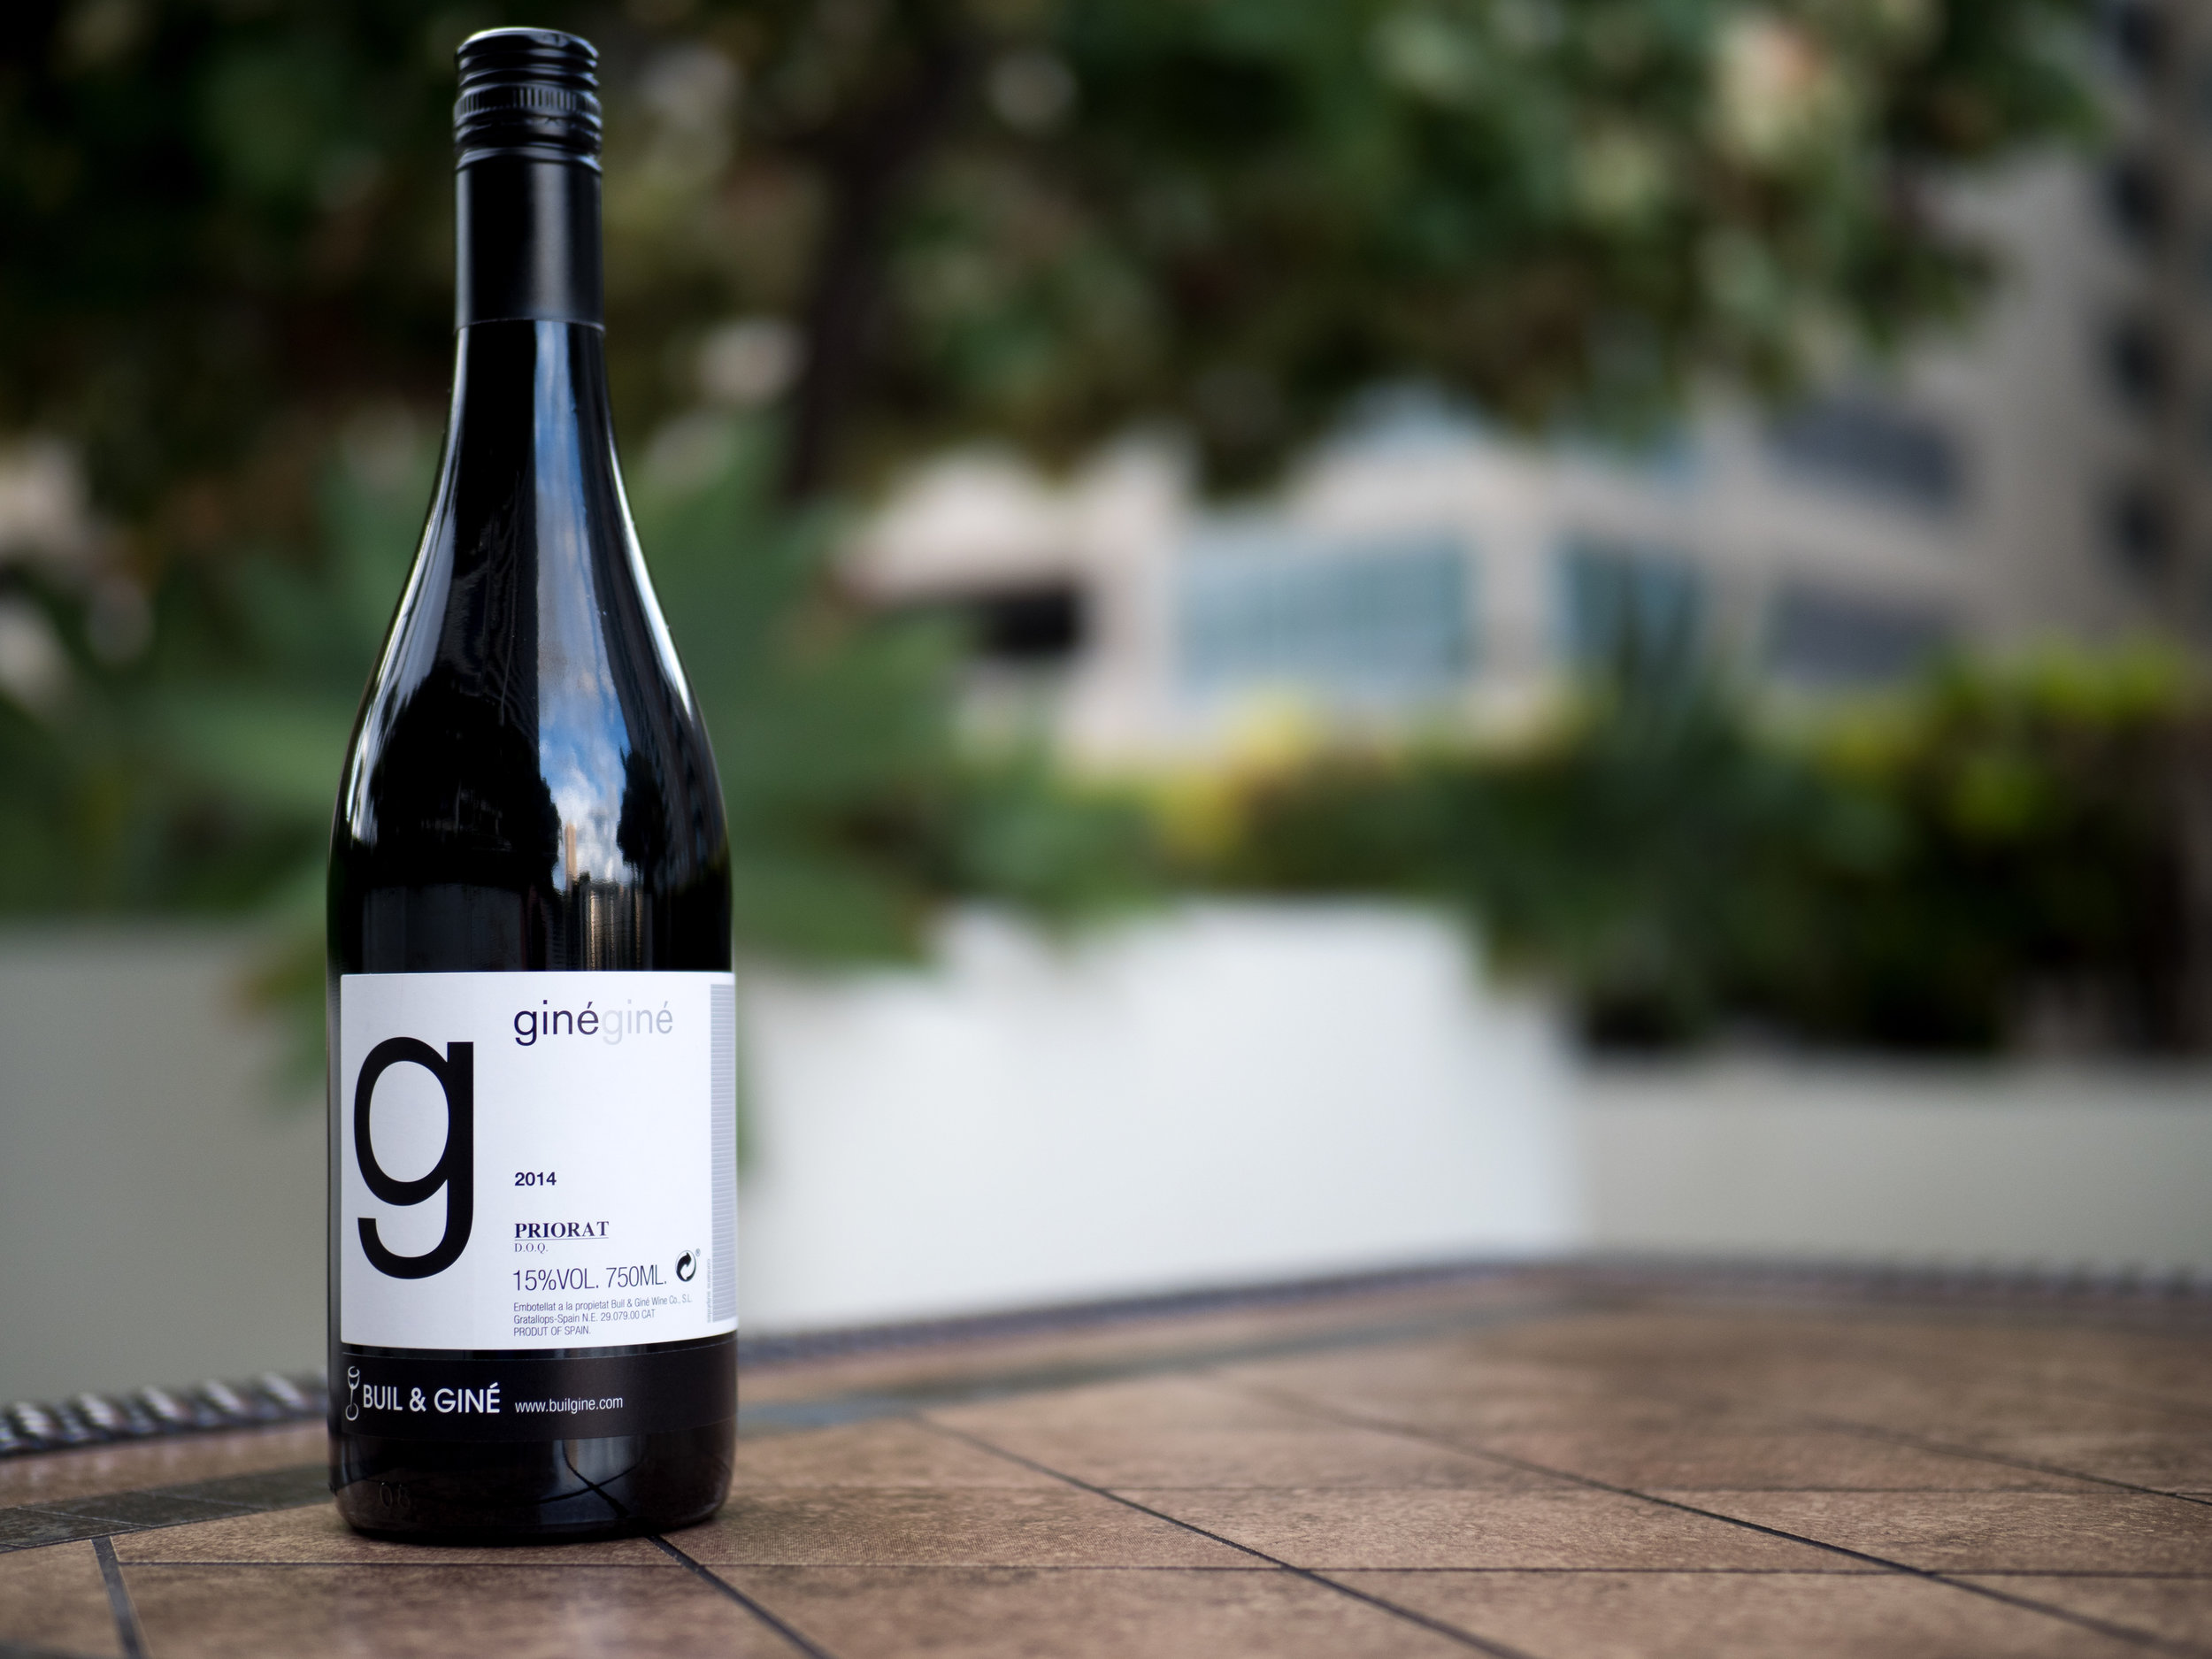 2014 Buil & Giné, Giné Giné, available at NK Wines in Honolulu's Chinatown District.